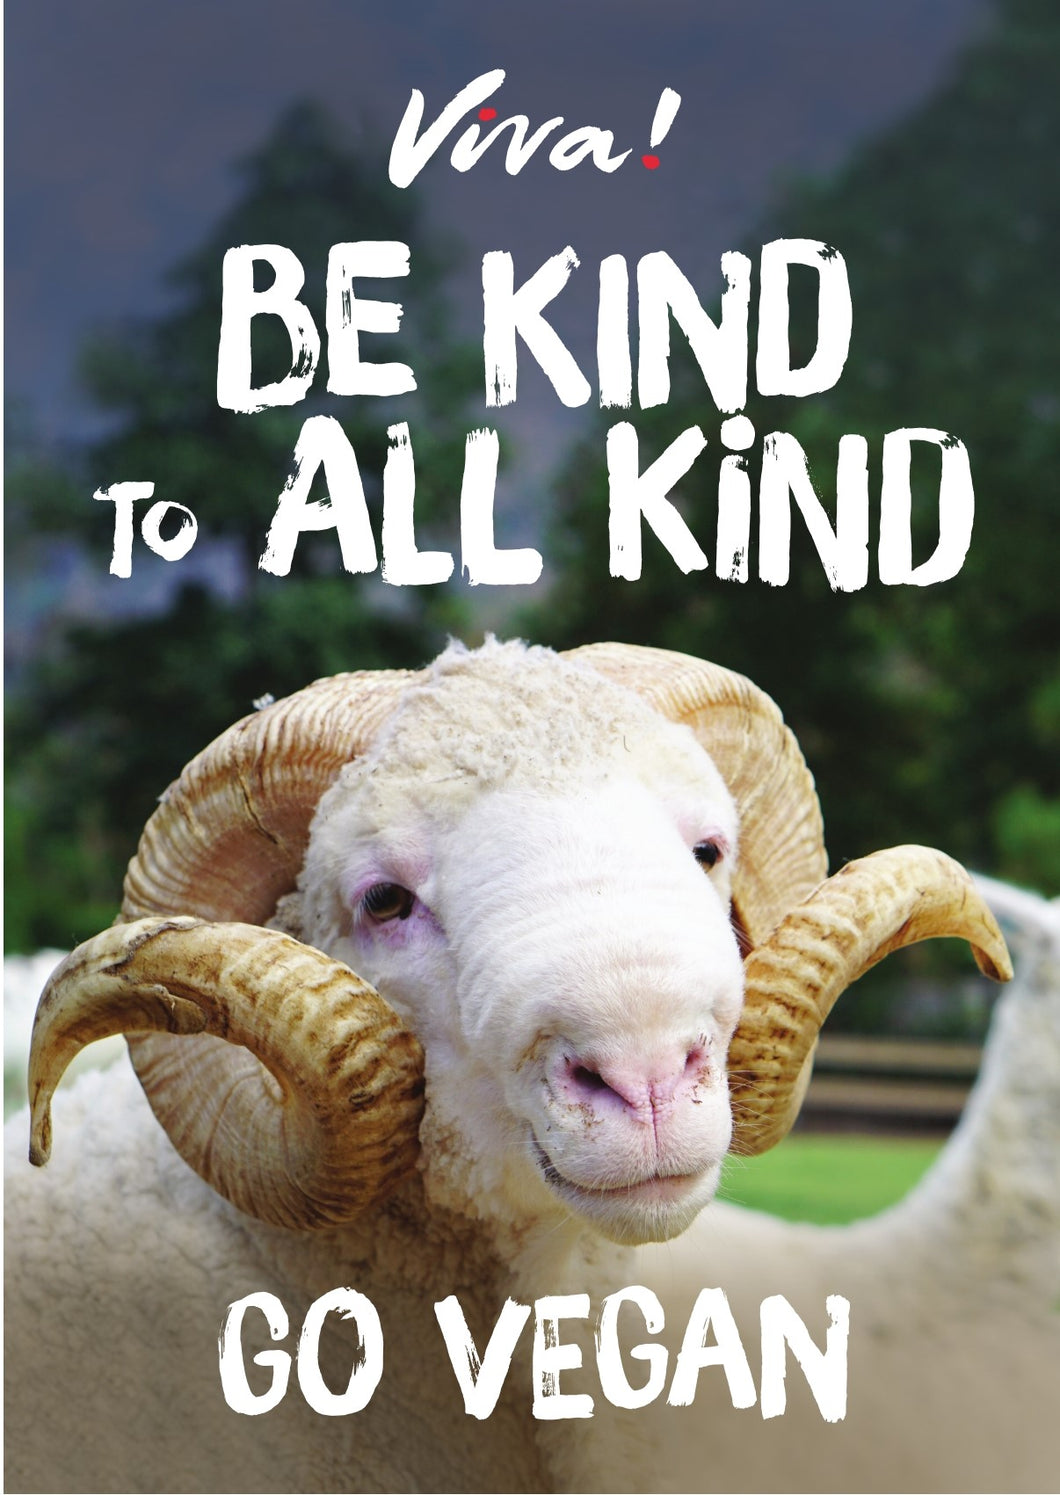 Viva! Be Kind to All Kind Sheep Poster